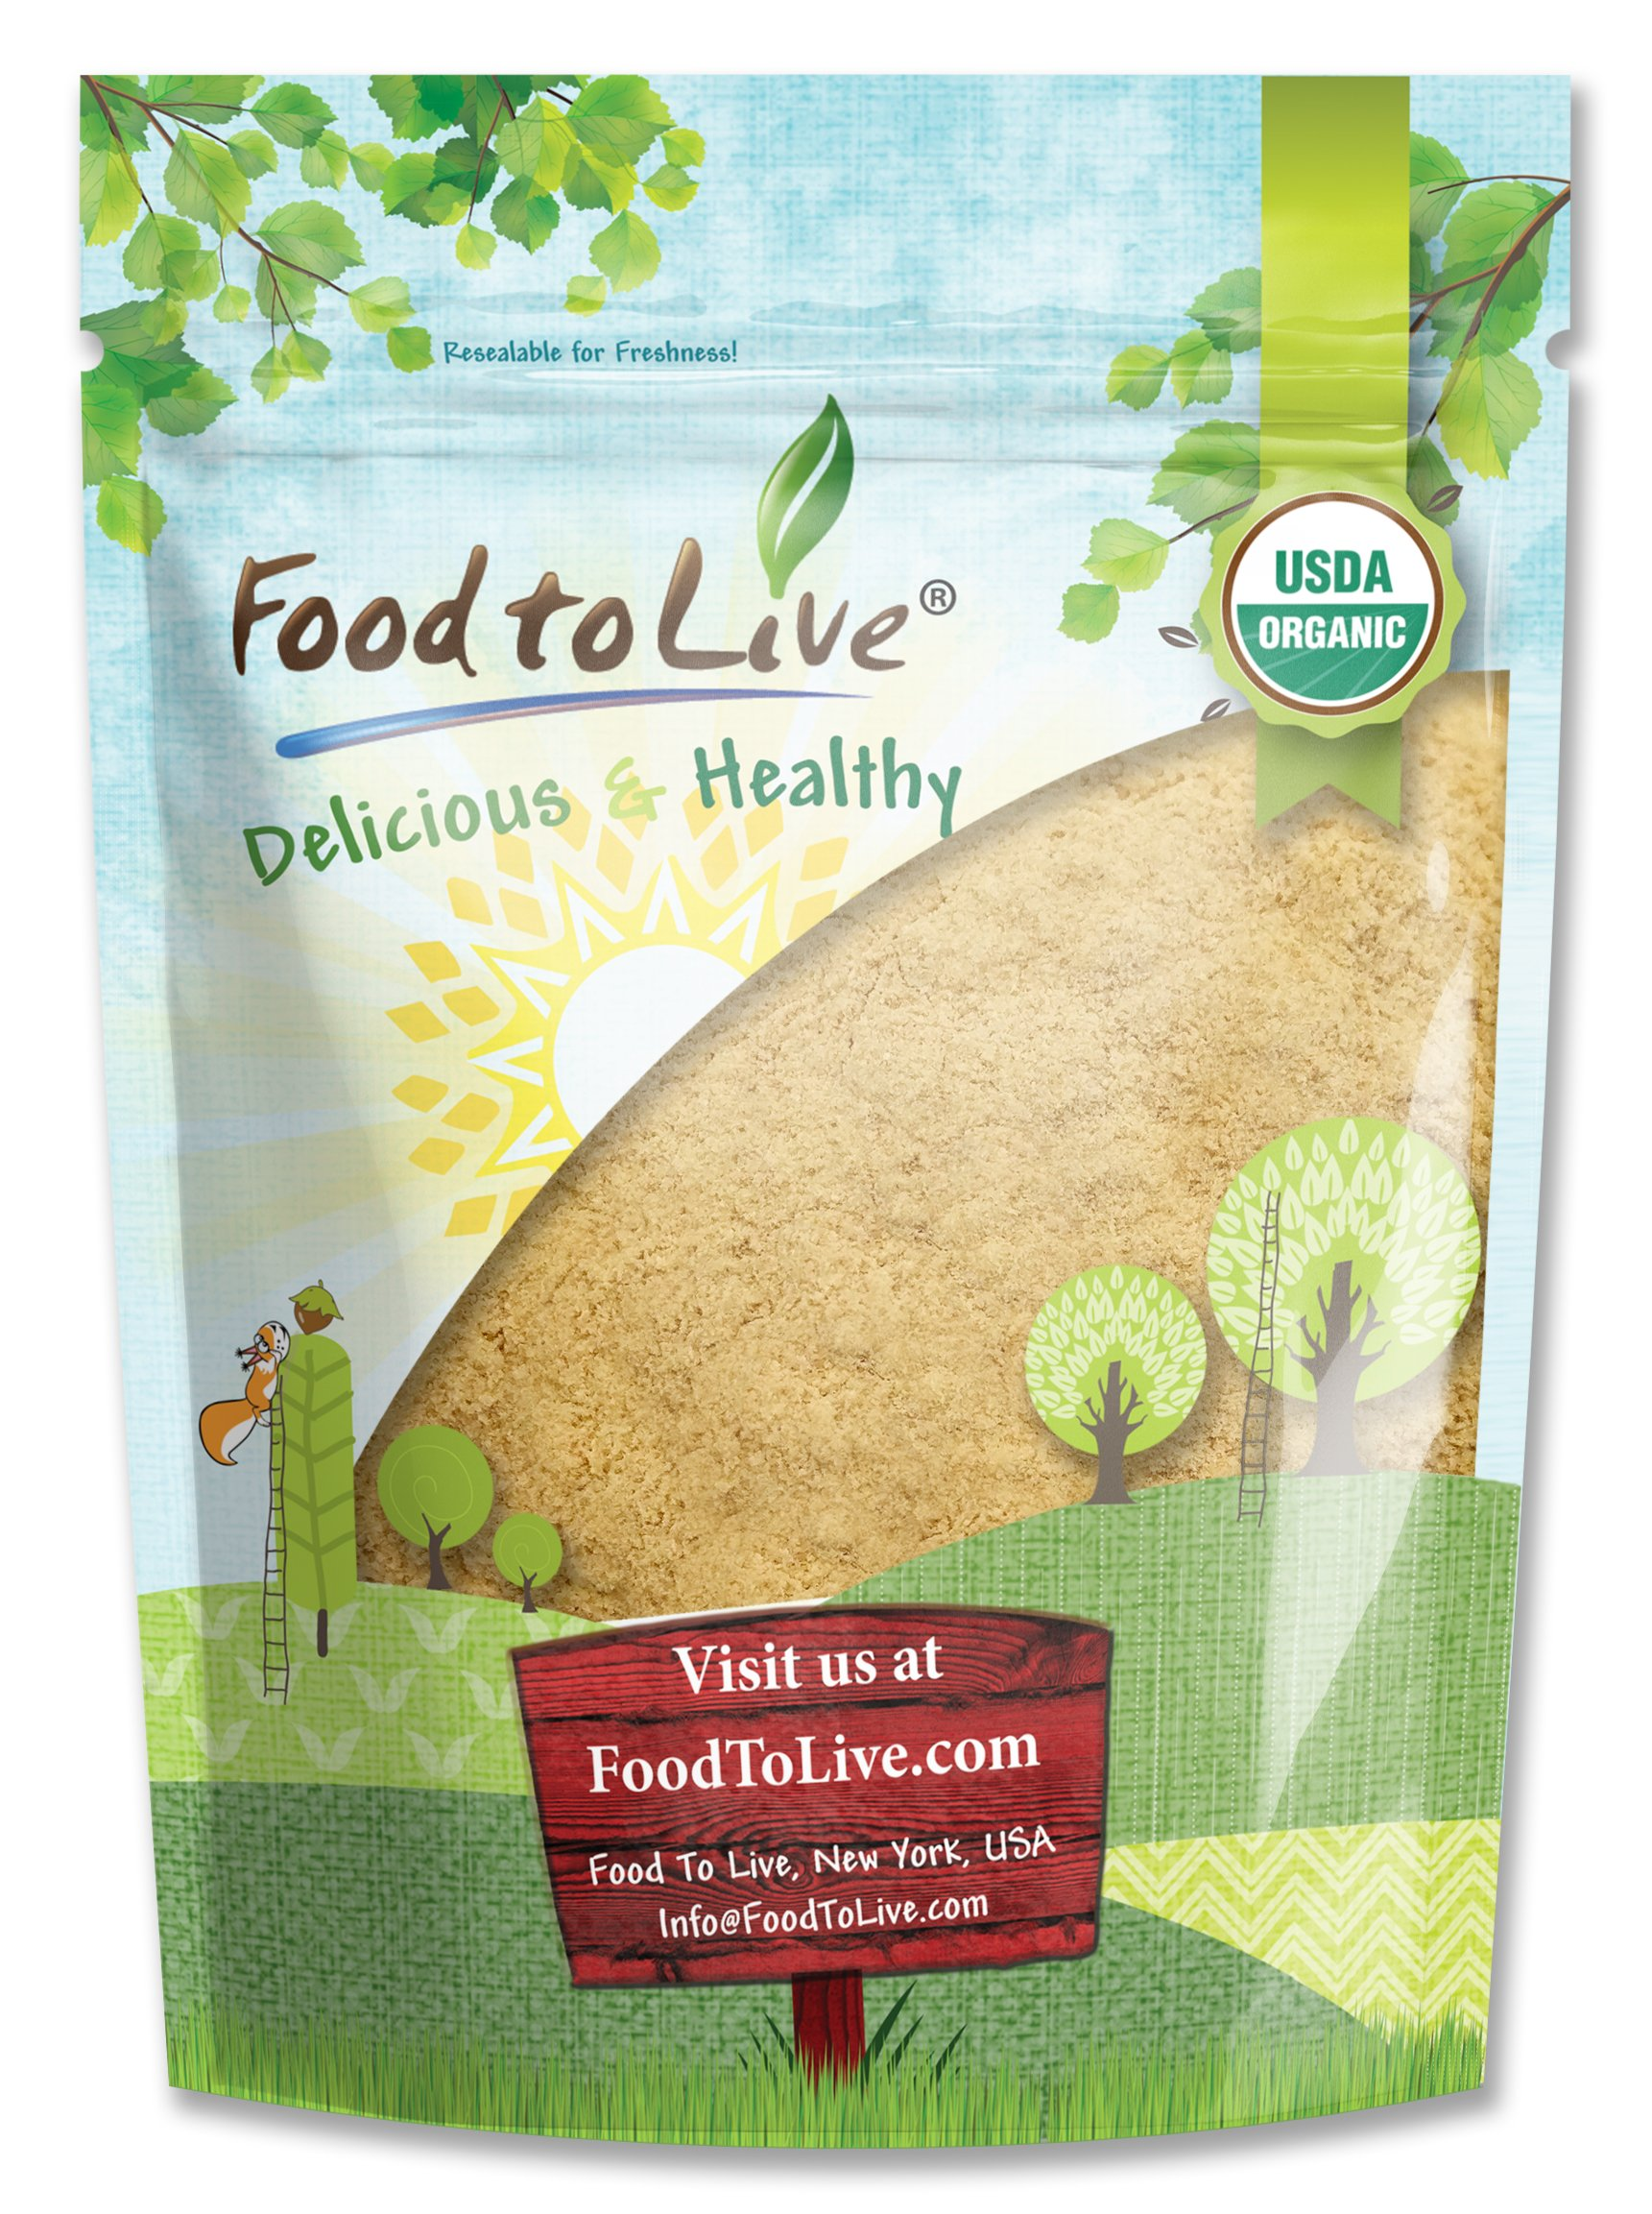 Food to Live Certified Organic Maca Root Powder (Non-GMO, Kosher, Raw Ground Maca Root, Flour, Bulk) (2 Pounds) by Food to Live